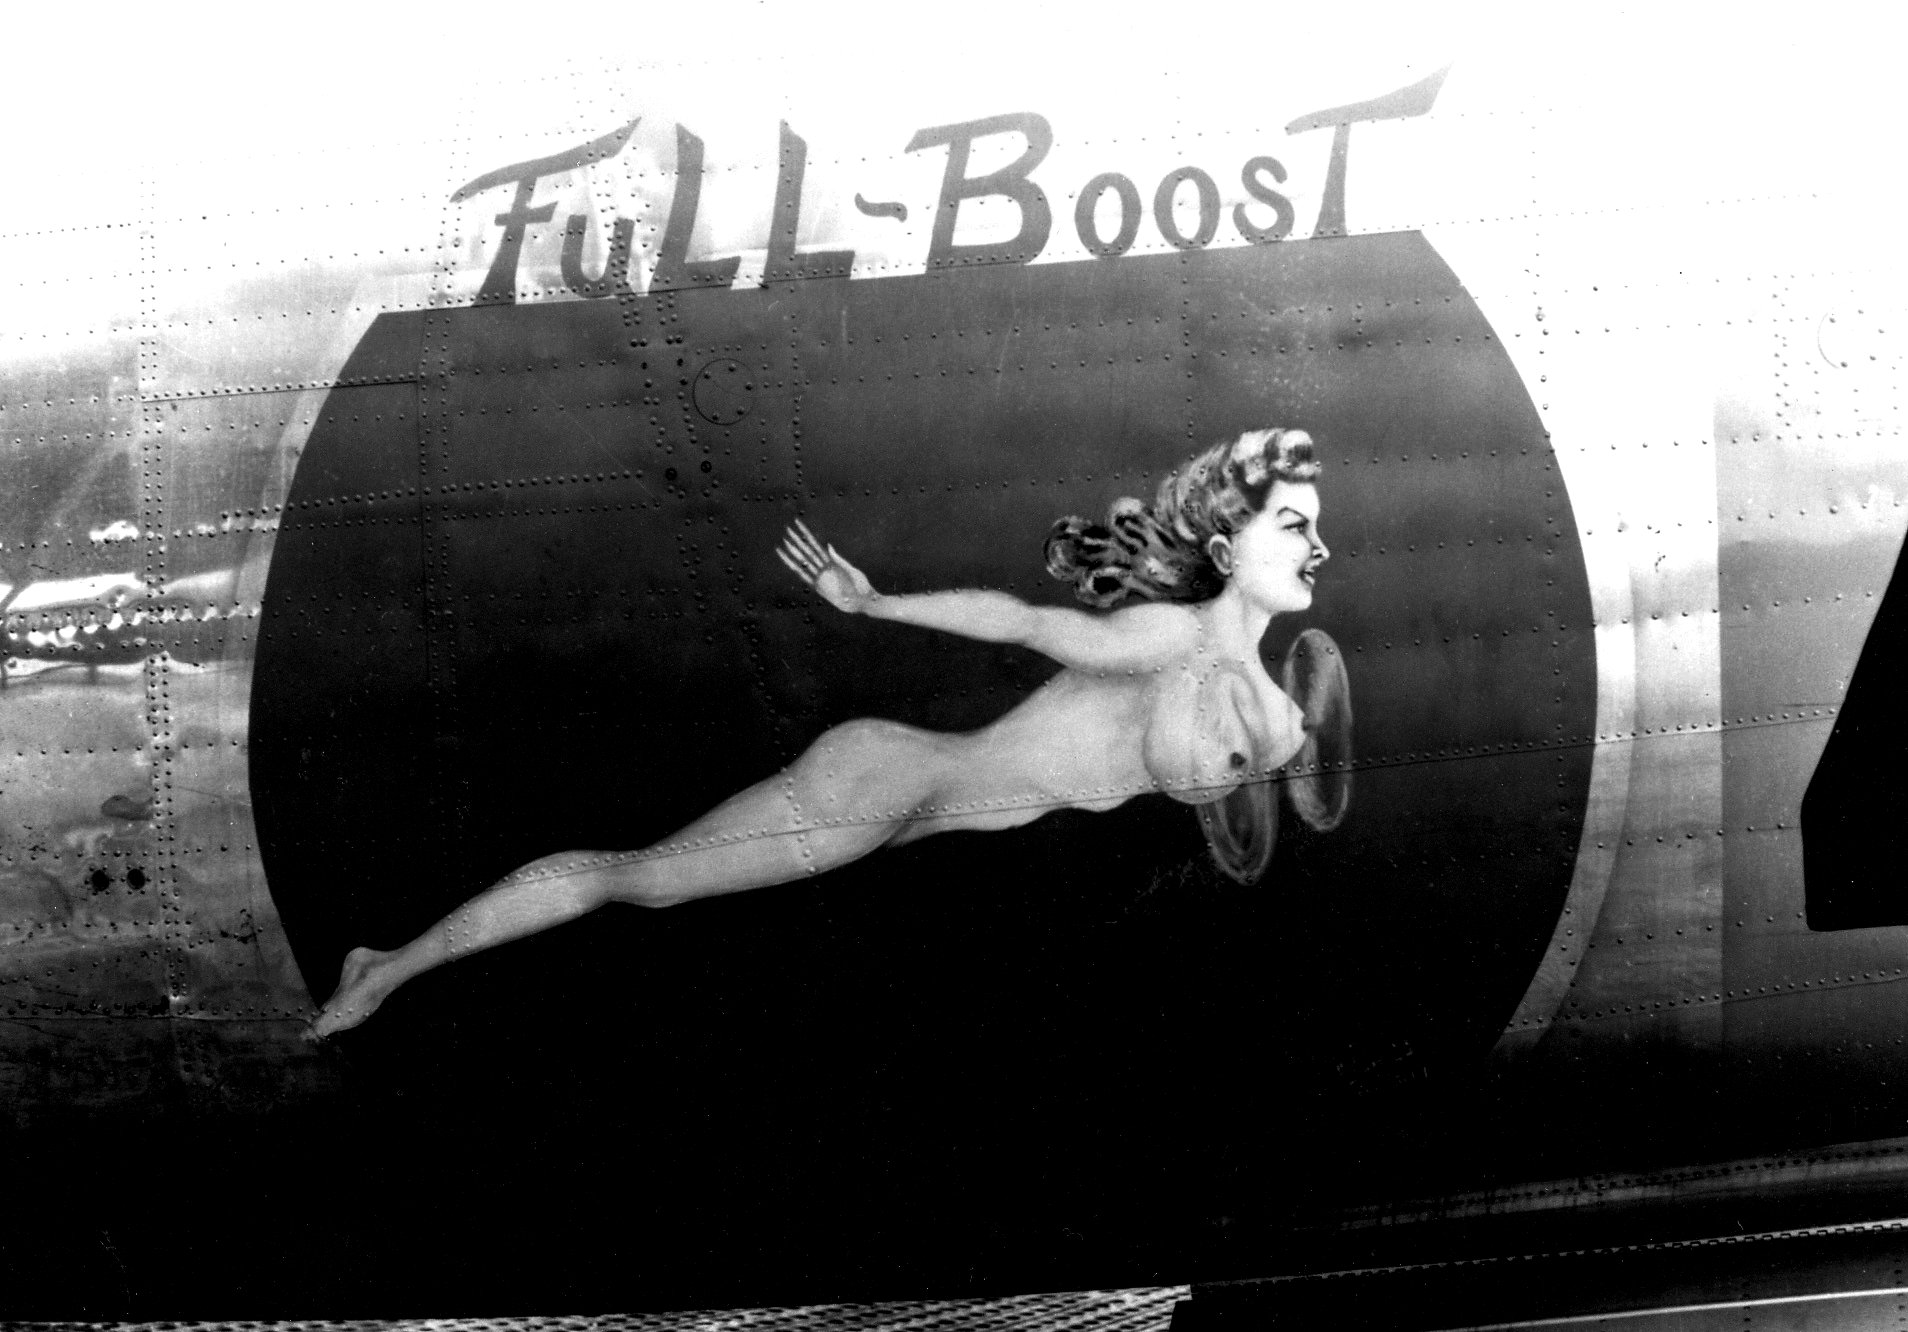 B 24 Liberator Nose Art Full Boost